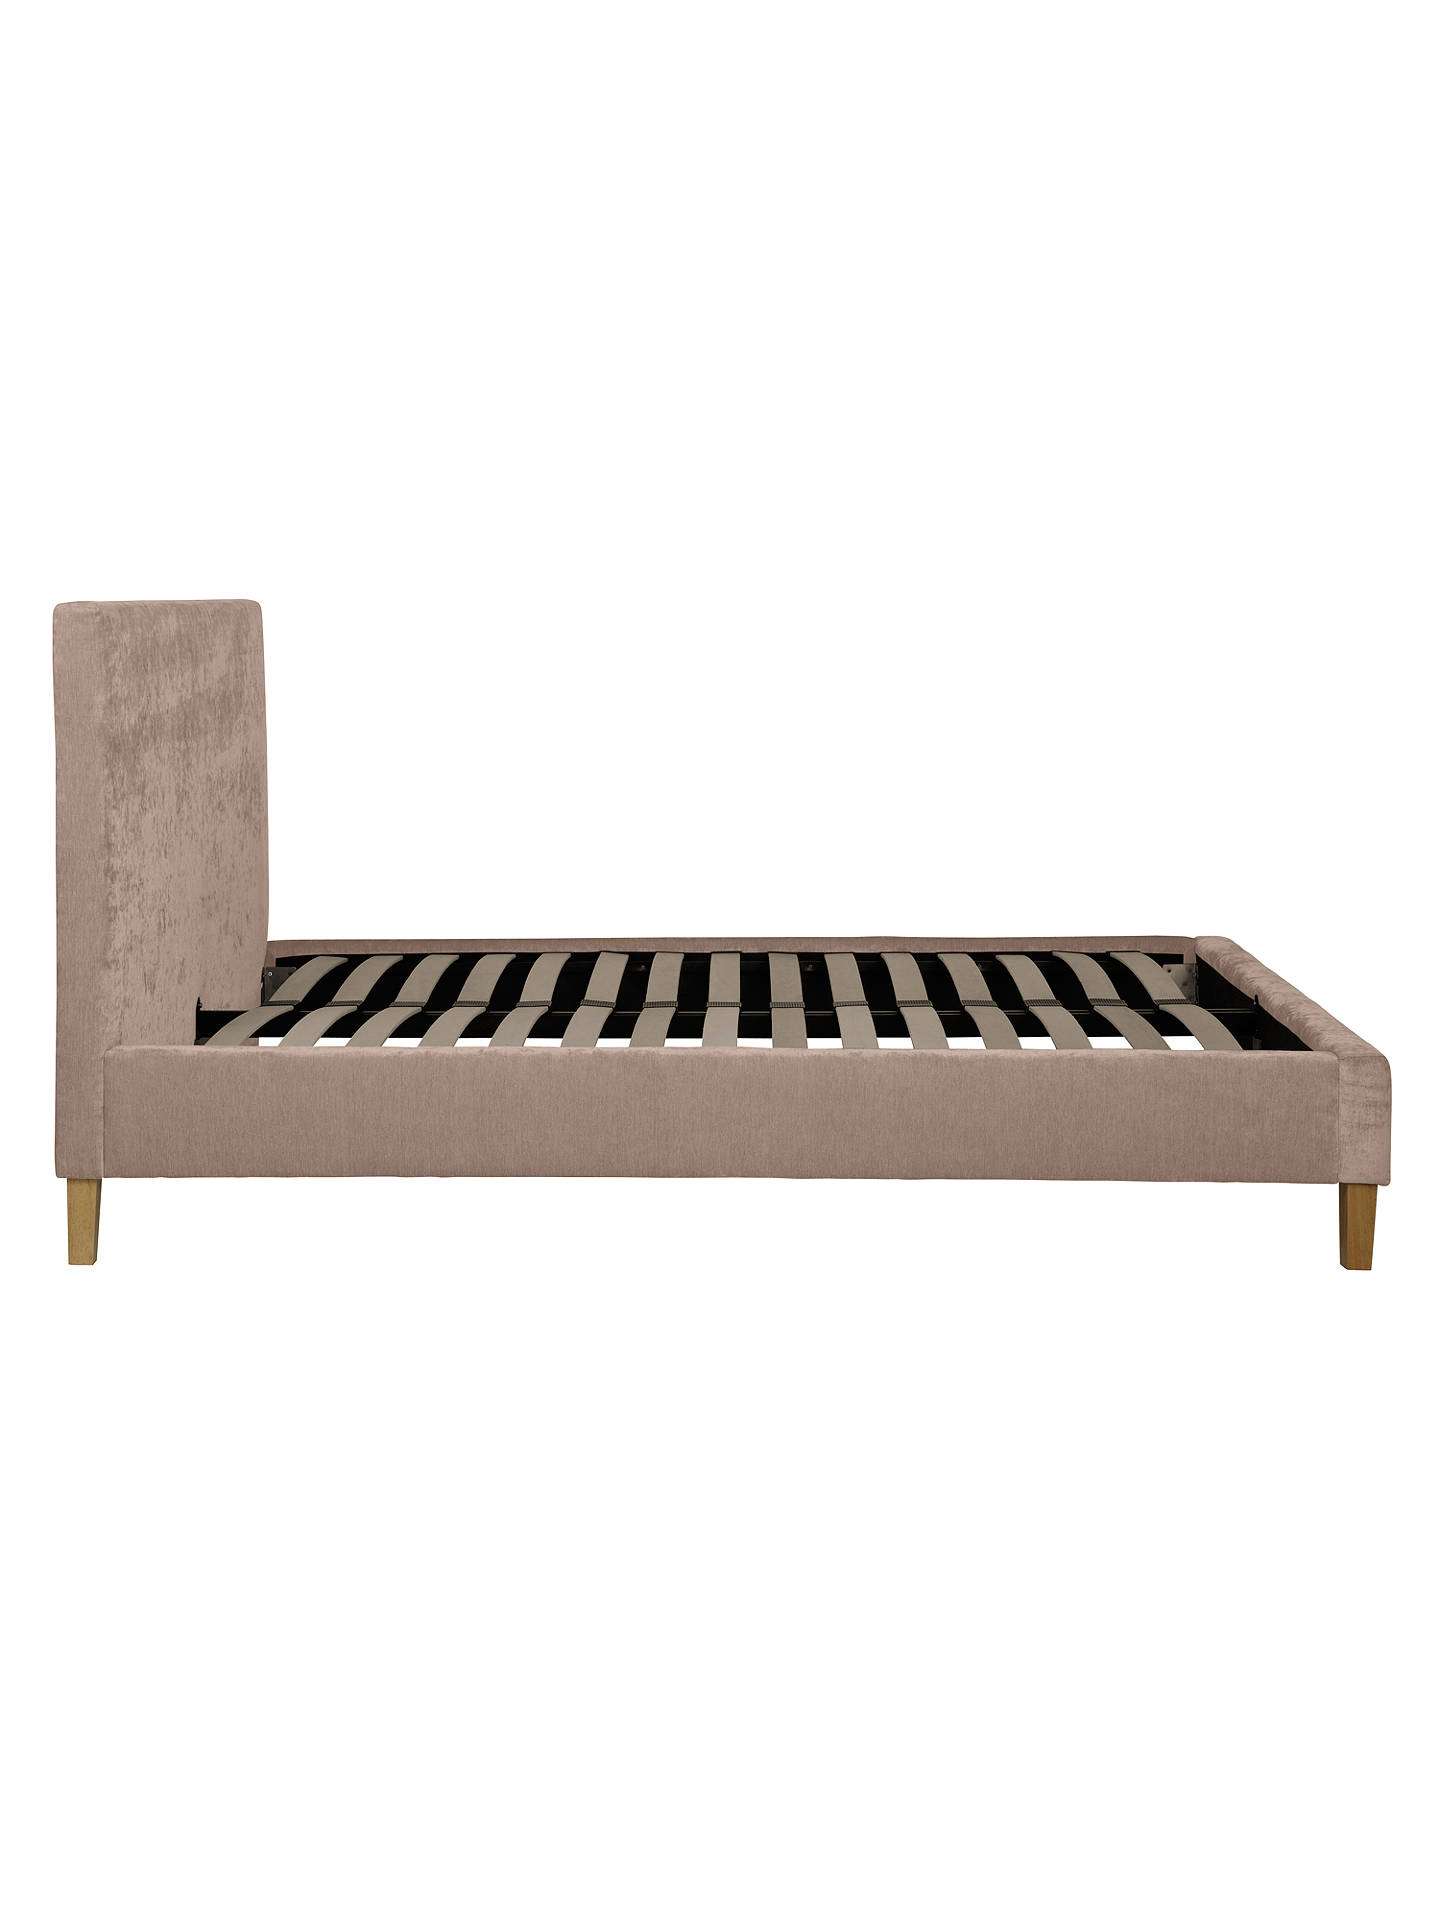 Buy John Lewis & Partners Emily Bed Frame, Small Double, Mink Online at johnlewis.com